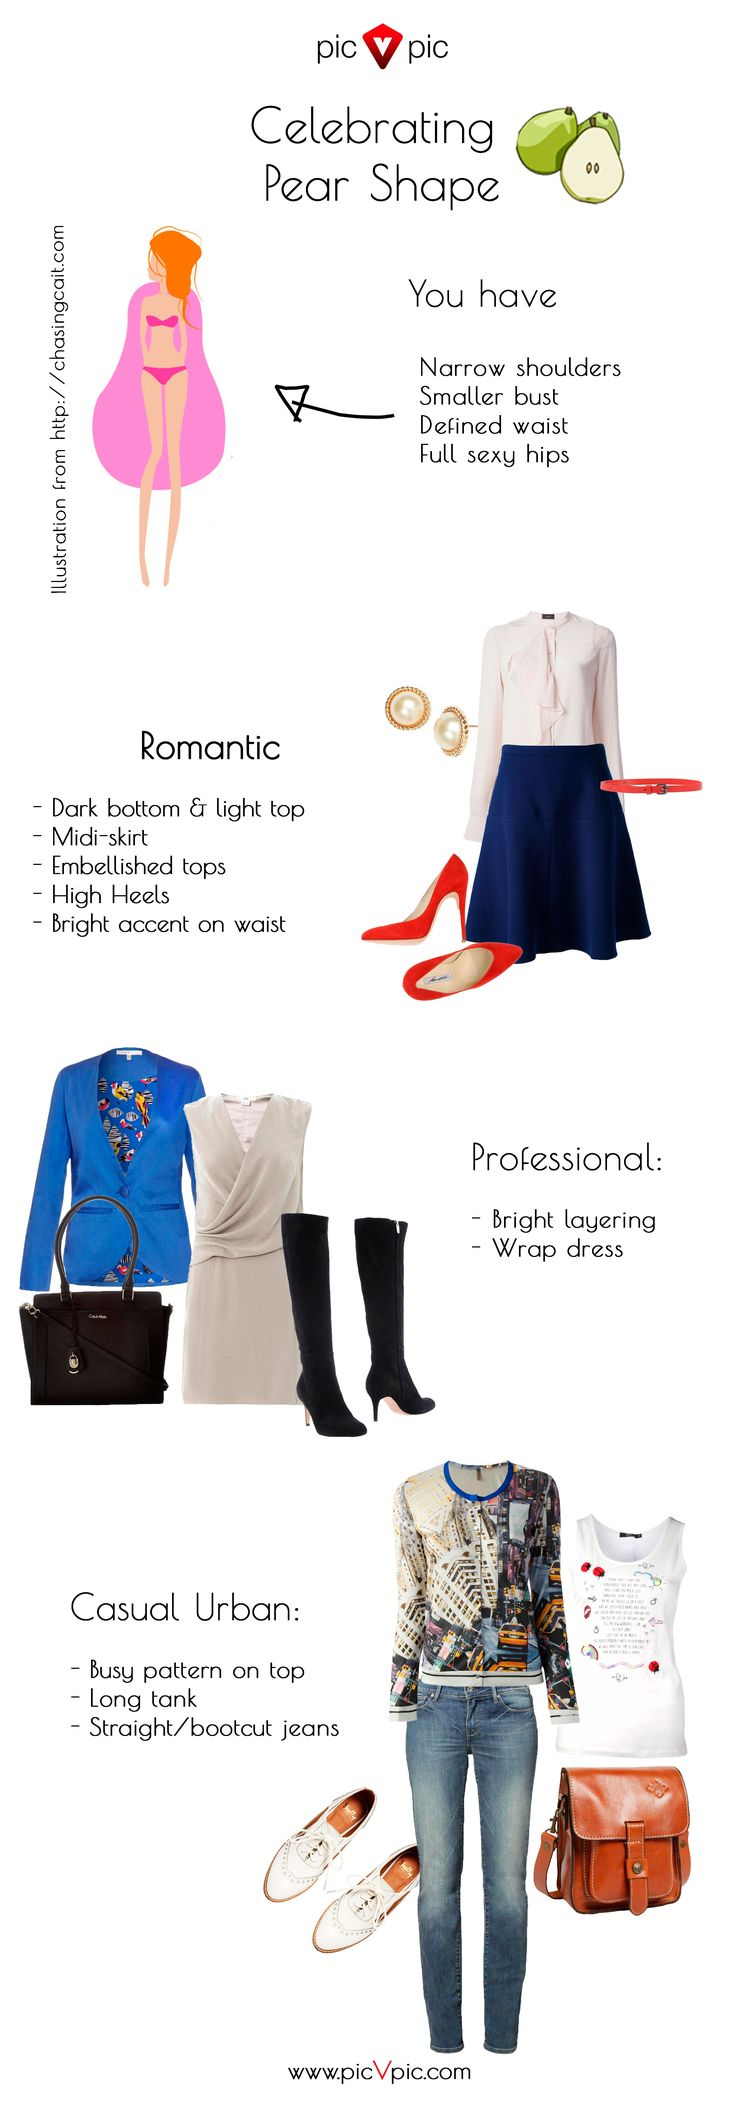 Wardrobe essentials for pear-shaped ladies